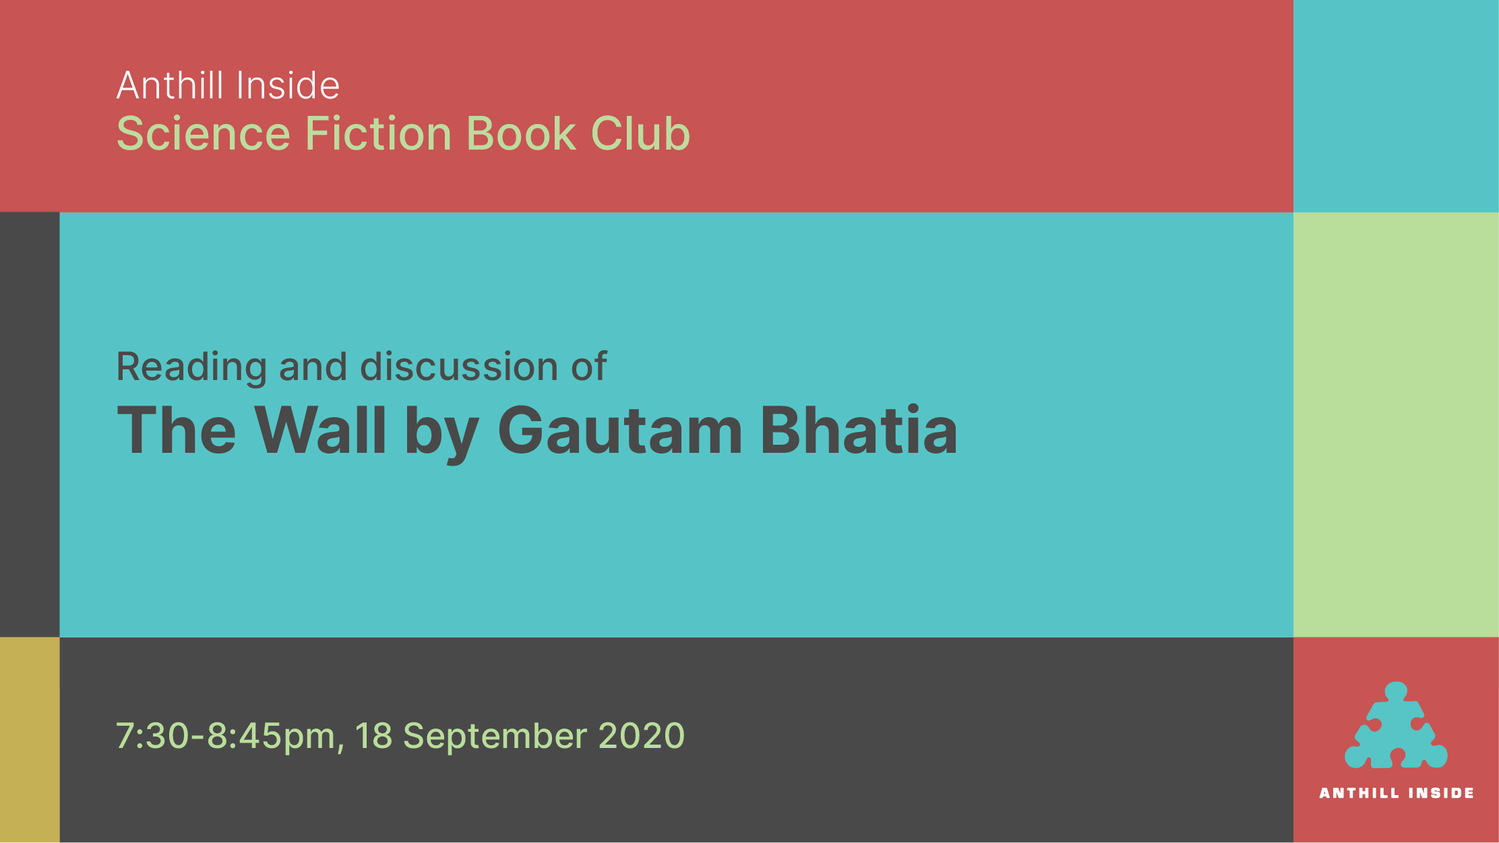 Reading and discussion of The Wall by Gautam Bhatia